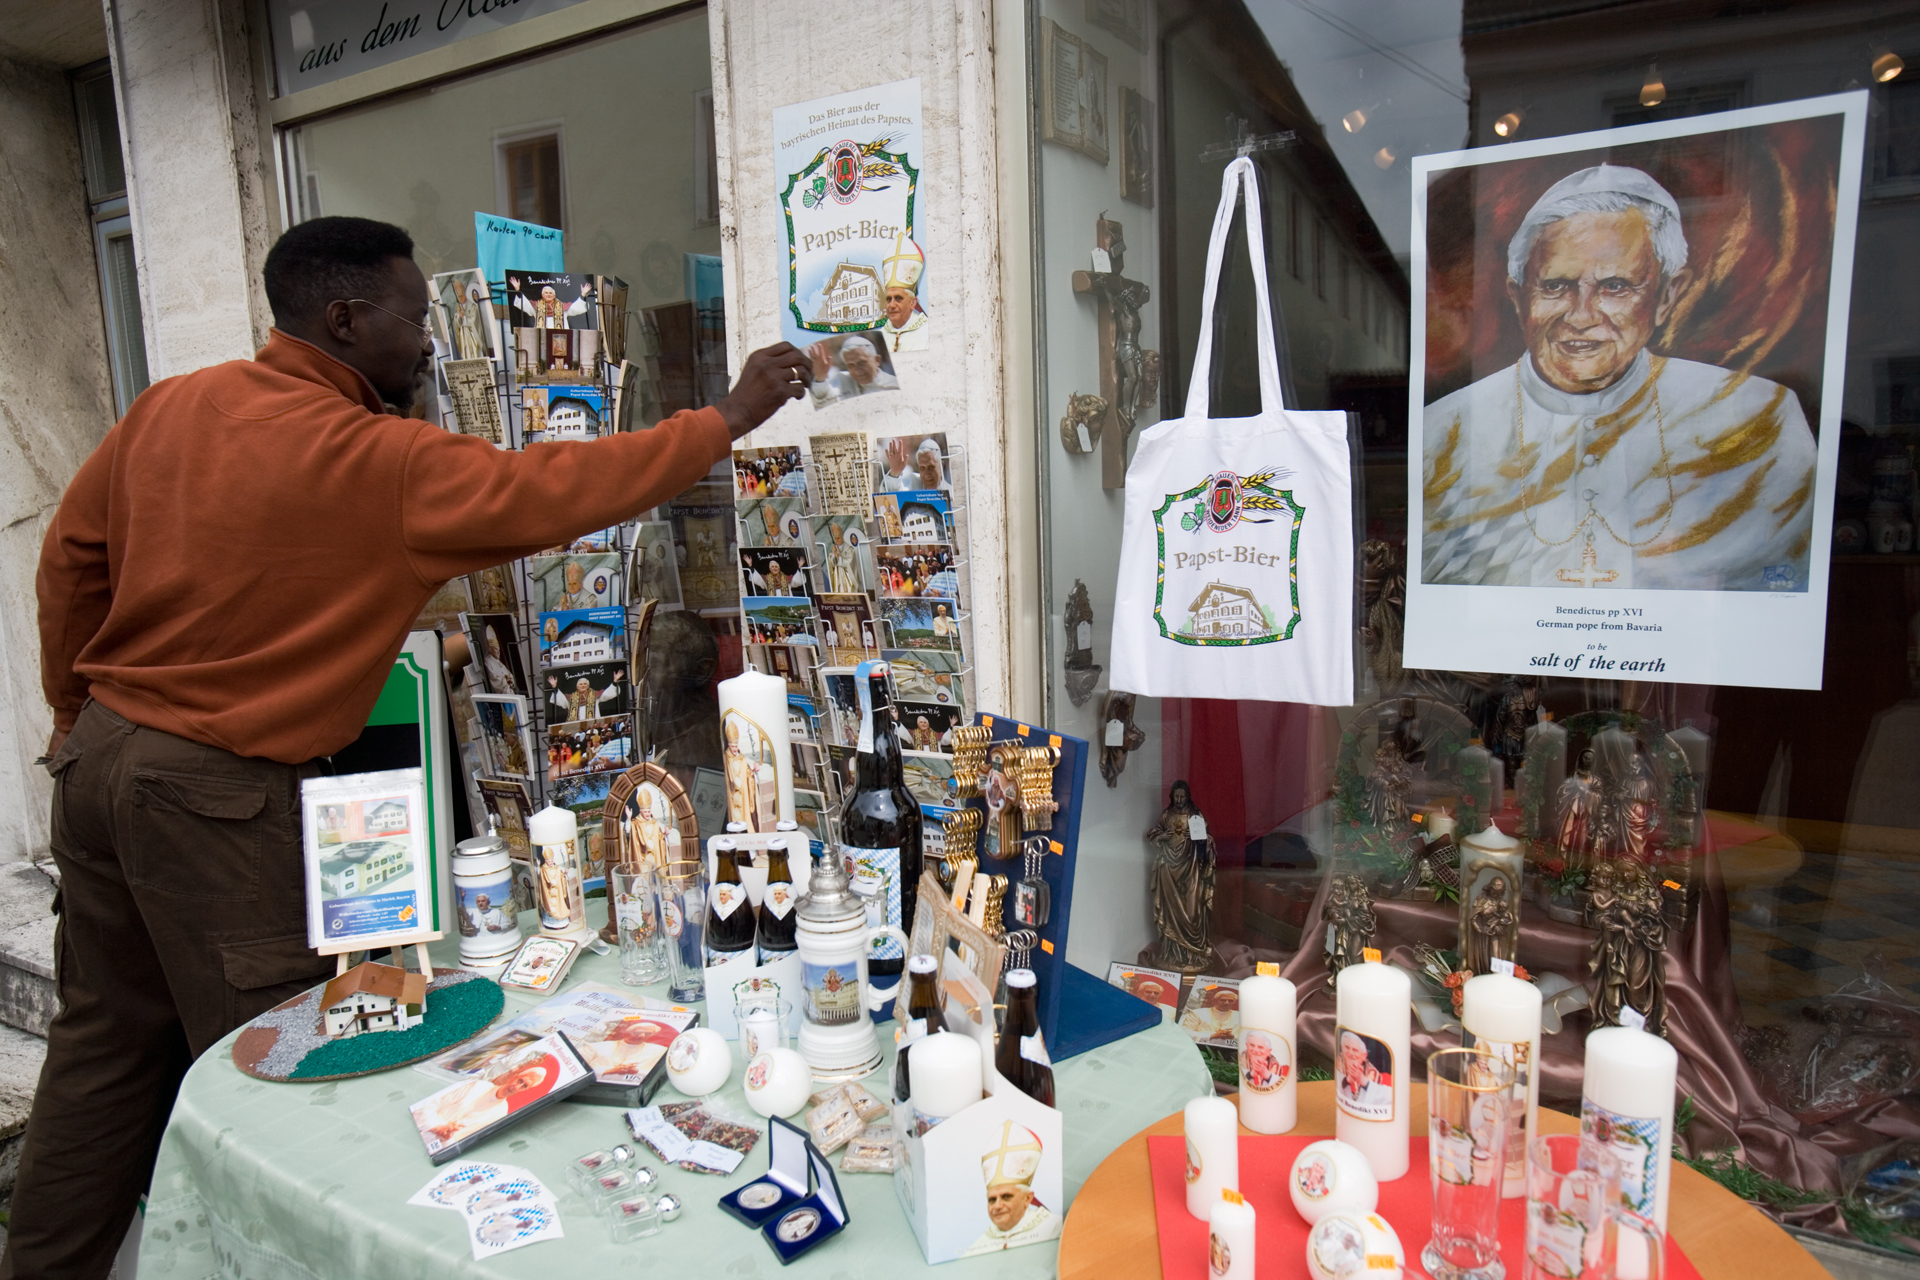 Visitors can buy Pope postcards, Pope posters, Pope candles, Pope key rings, Pope pastries, Pope candy, Holy water with the Pope's image, Pope beer, Pope wine, Pope T-shirts, and more.  Marktl, Germany